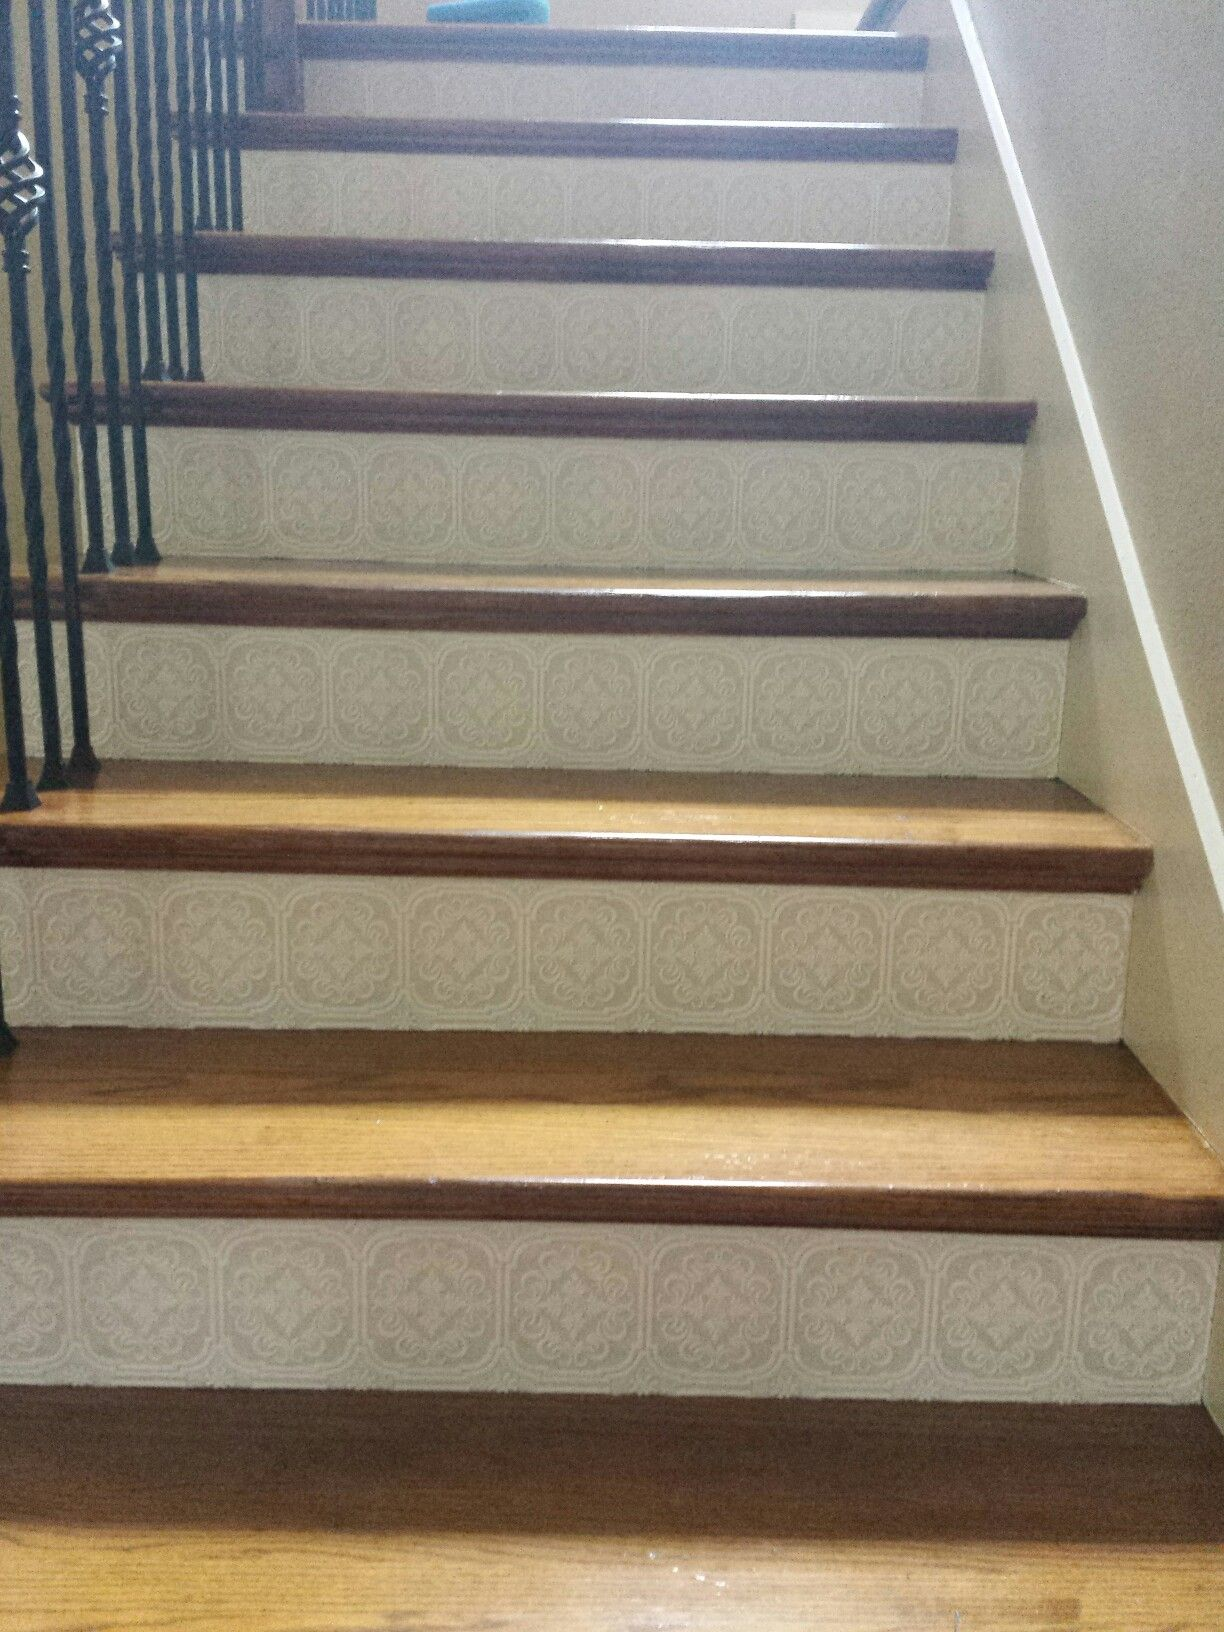 DIY Decorative stairs. Get textured wall paper and add it